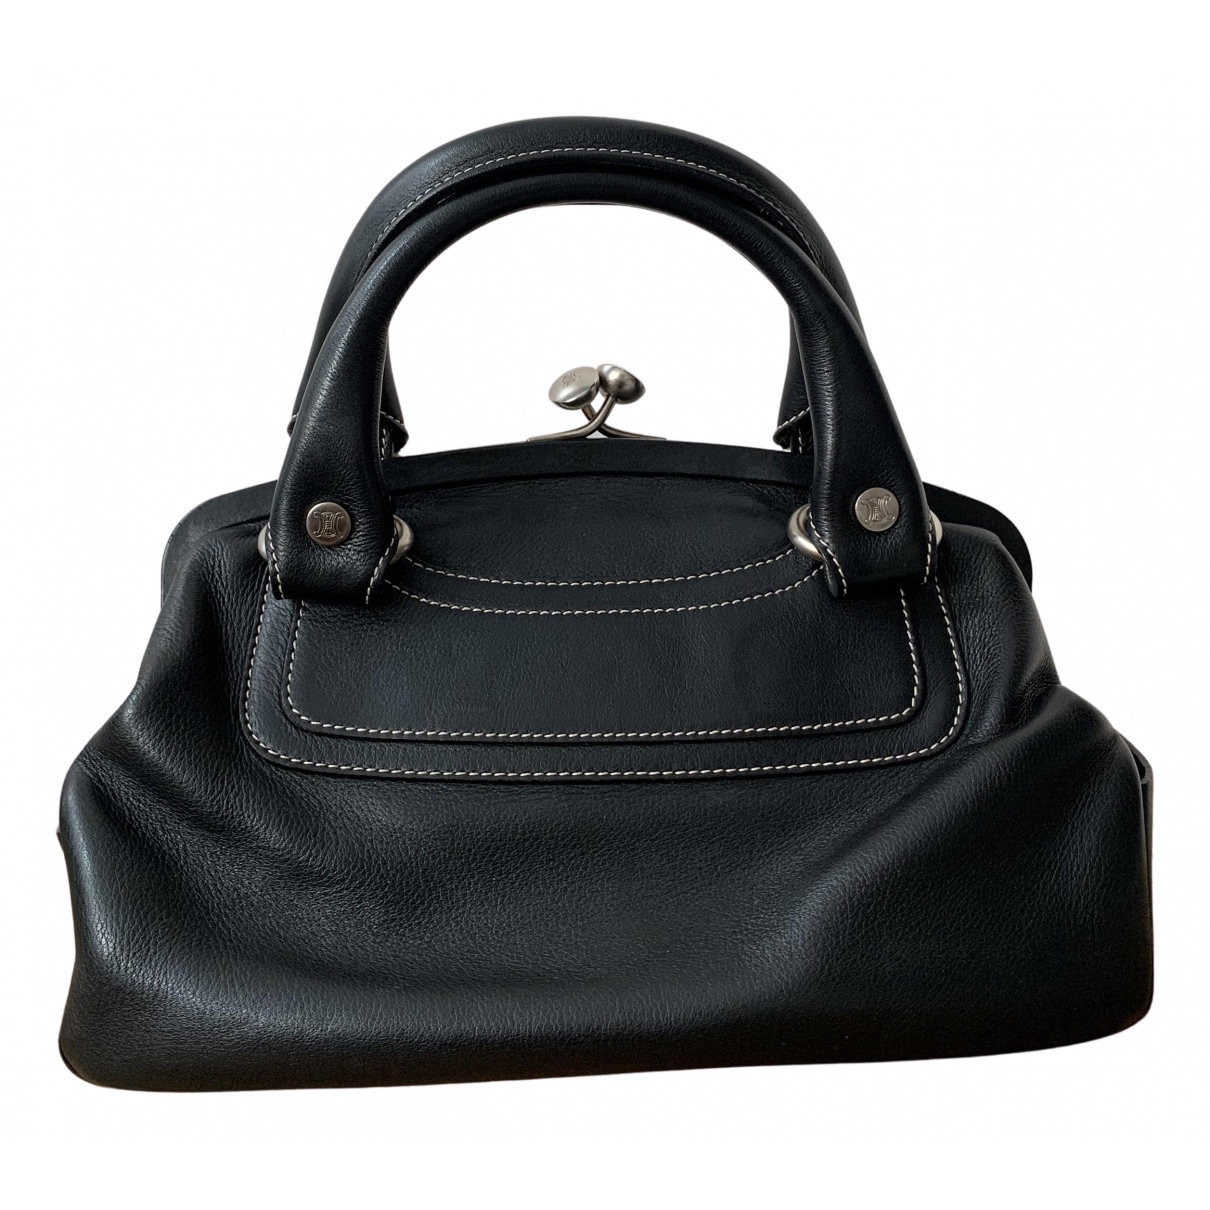 Celine N Black Leather handbag for Women N